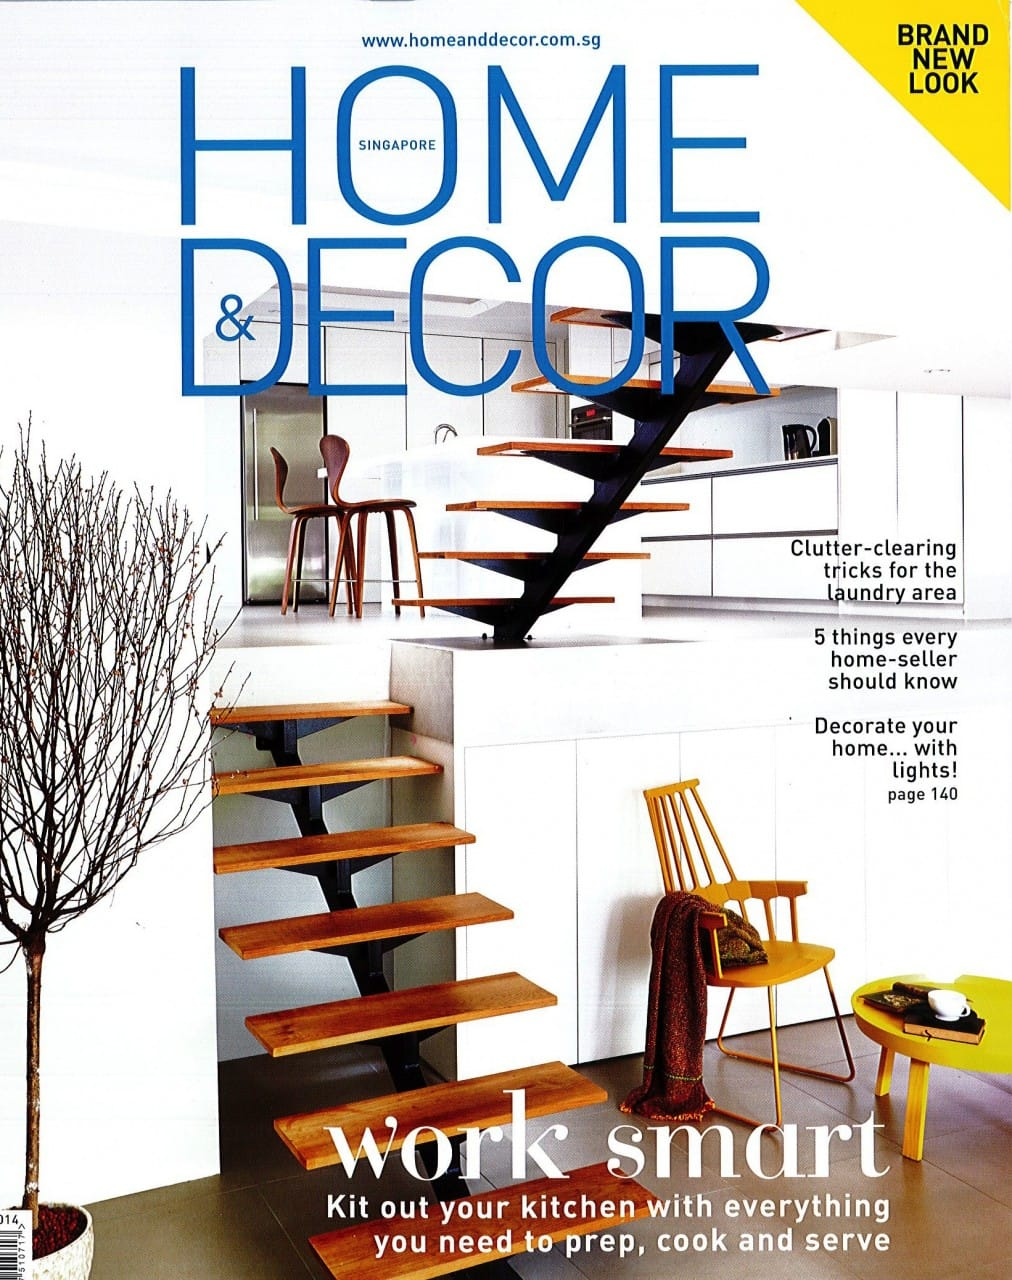 Home & Decor - September 2014